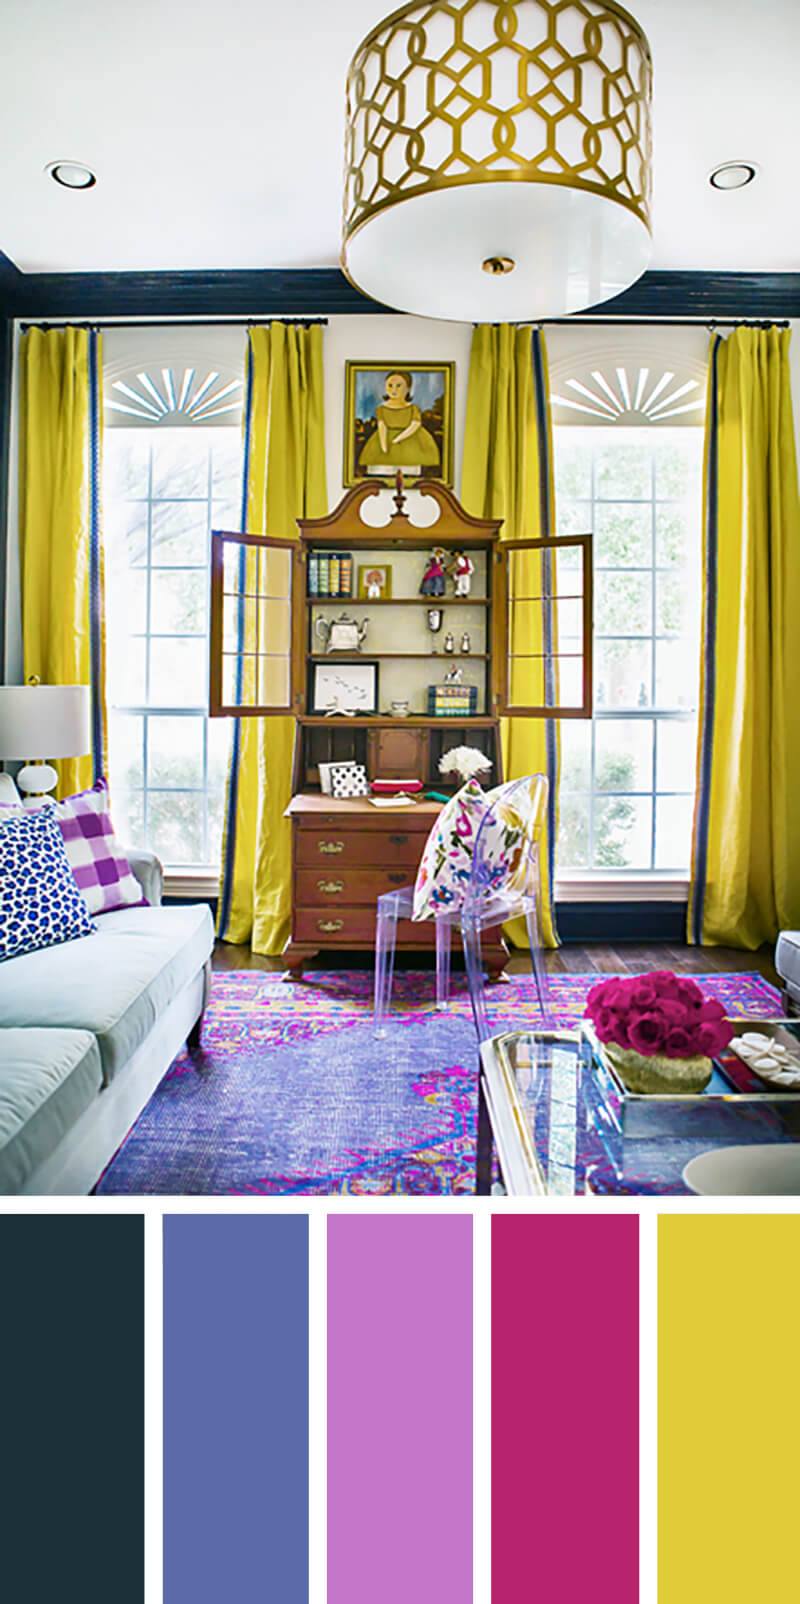 7 living room color schemes that will make your space look professionally designed decor10 blog Purple living room color schemes